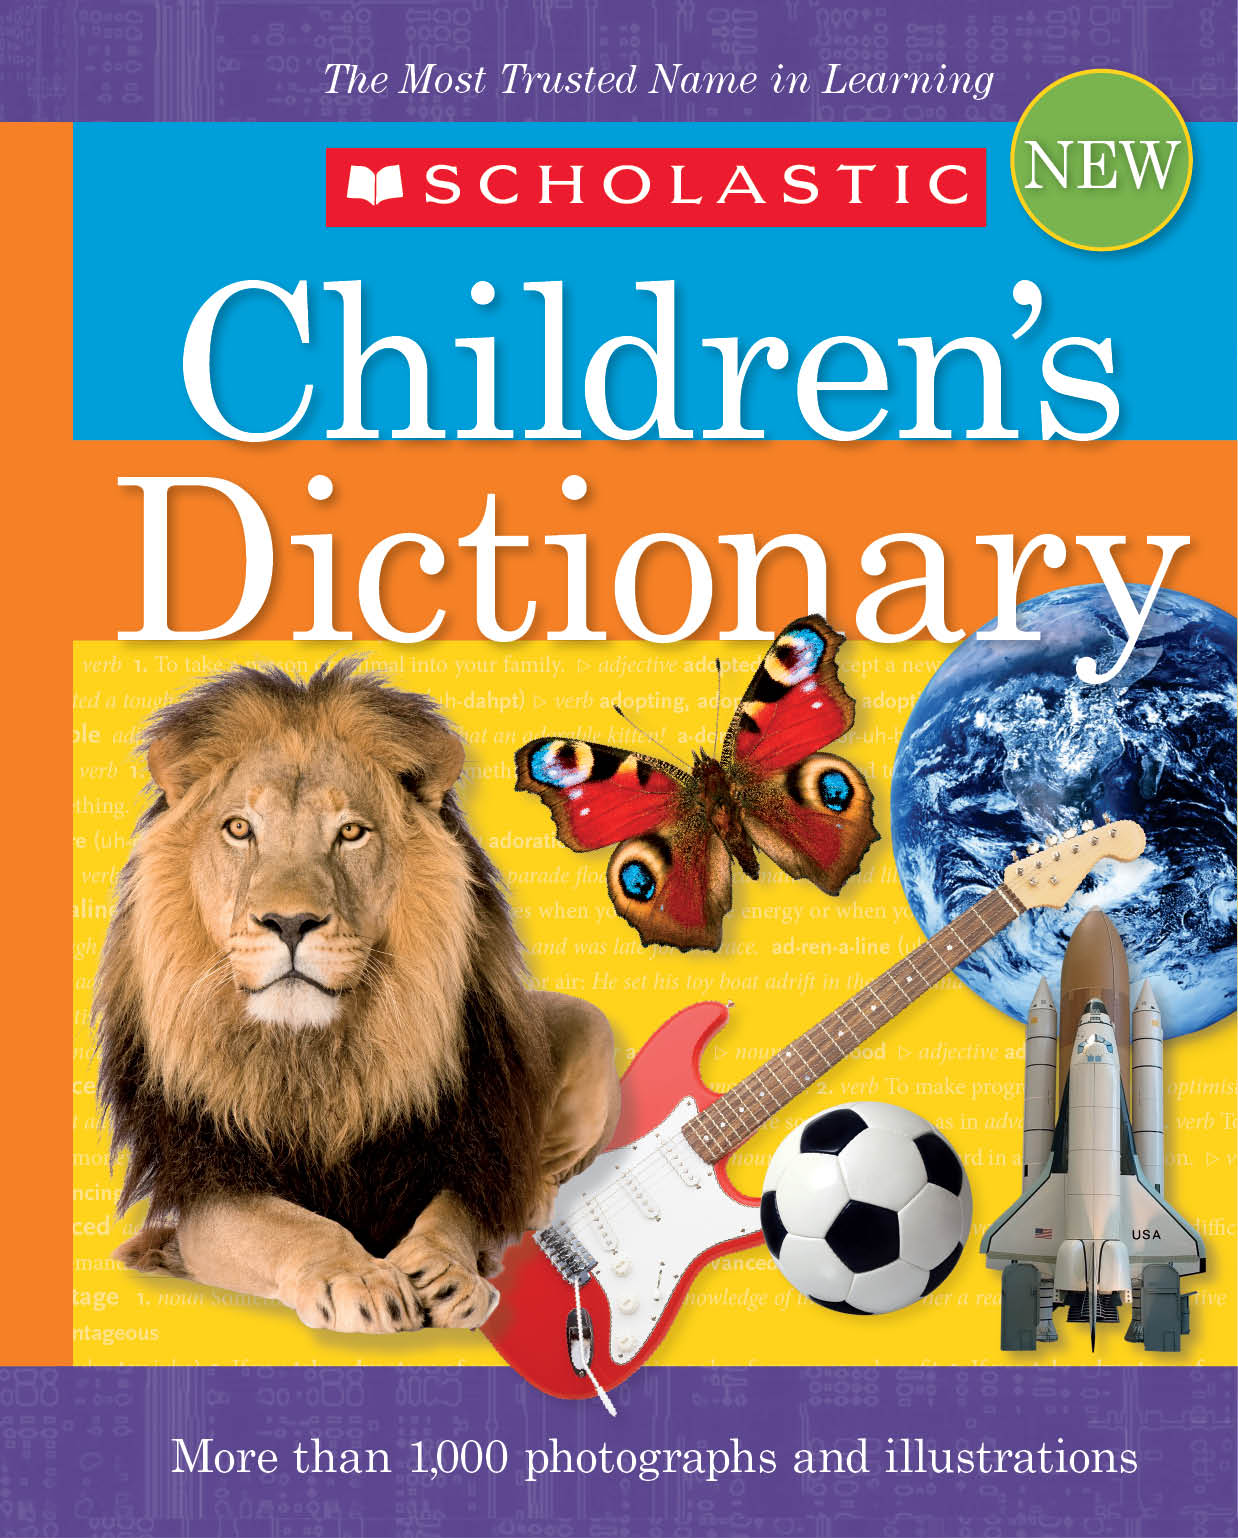 Scholastic Children's Dictionary Back-To-School Blog Tour